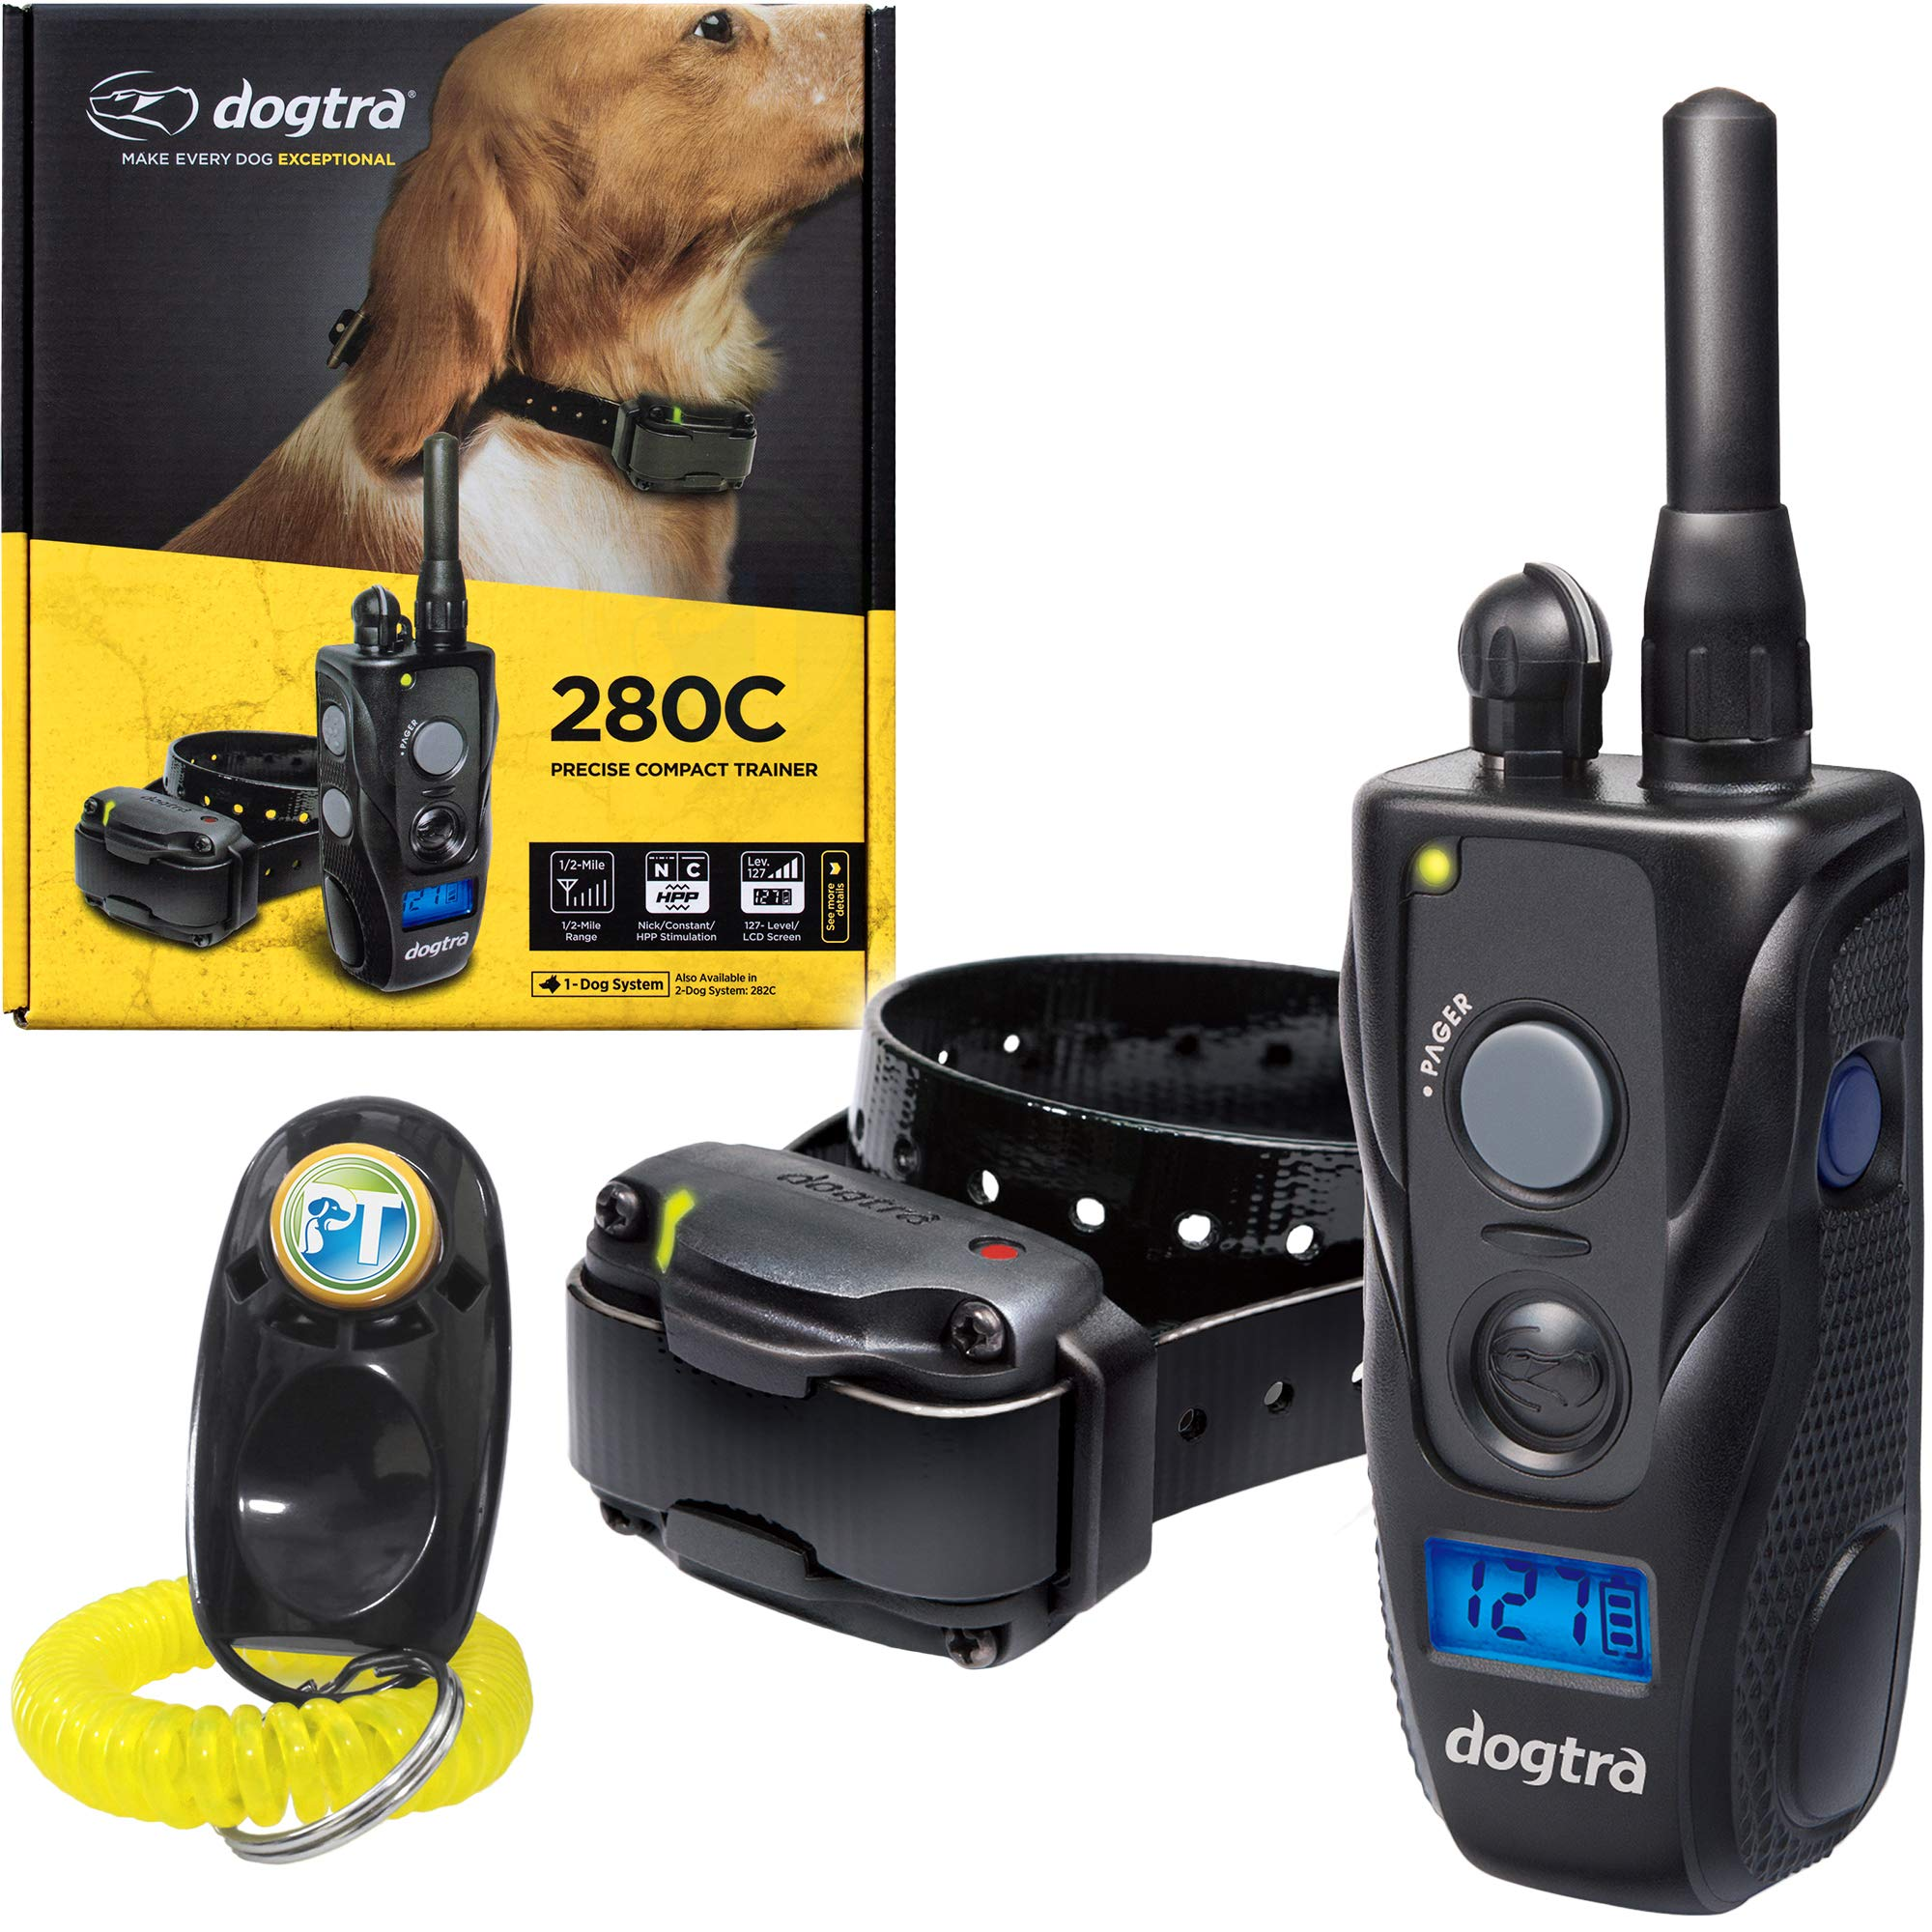 Dogtra 280C Remote Training Collar - 1/2 Mile Range, Waterproof, Rechargeable, Shock, Vibration - Includes PetsTEK Dog Training Clicker by Dogtra